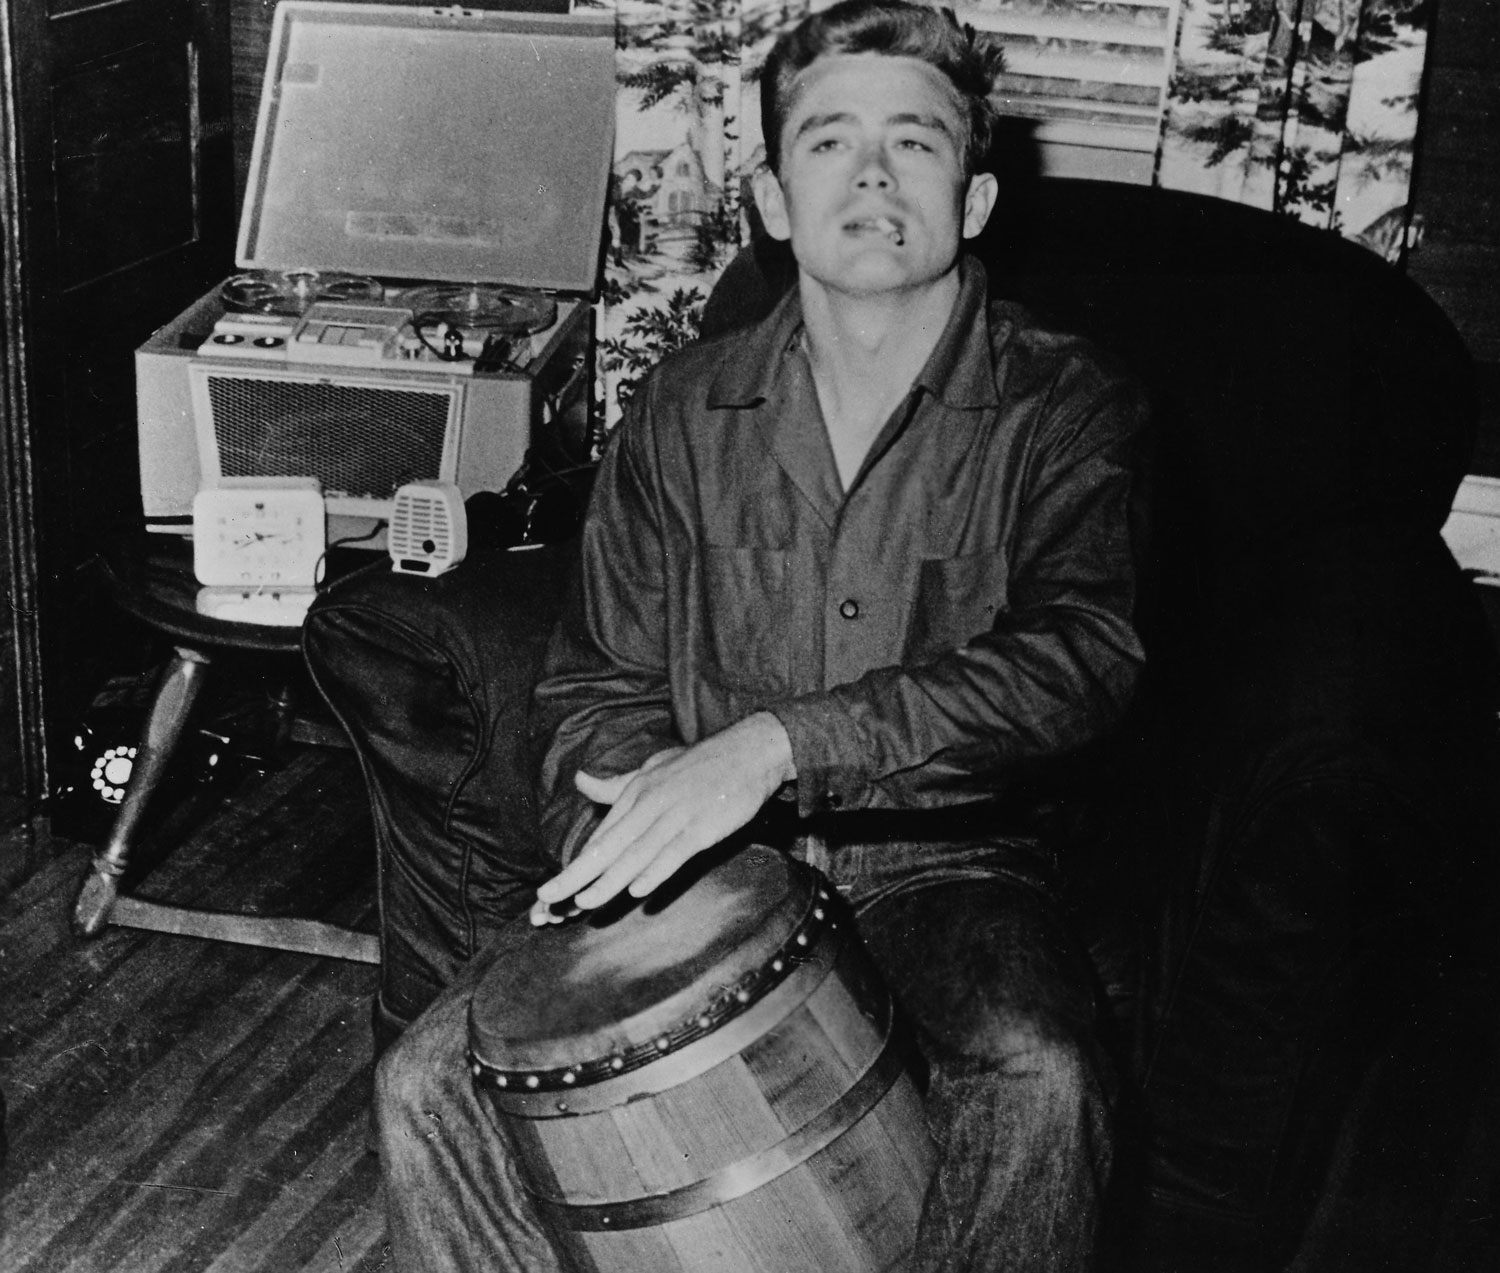 James Dean shows off his musical side with a conga drum.